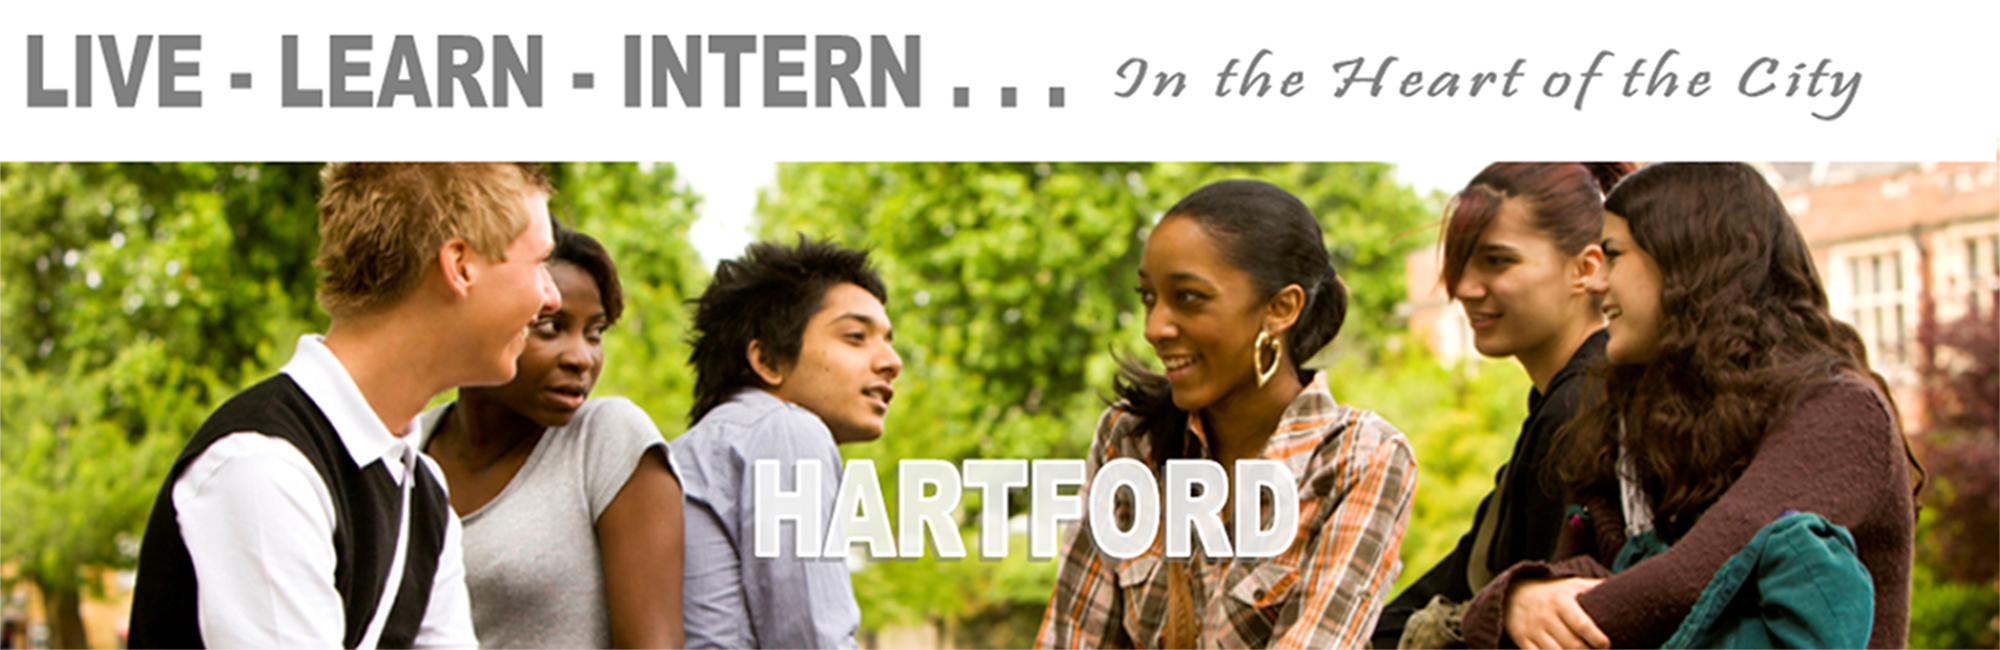 Live Learn Intern in the the heart of the city